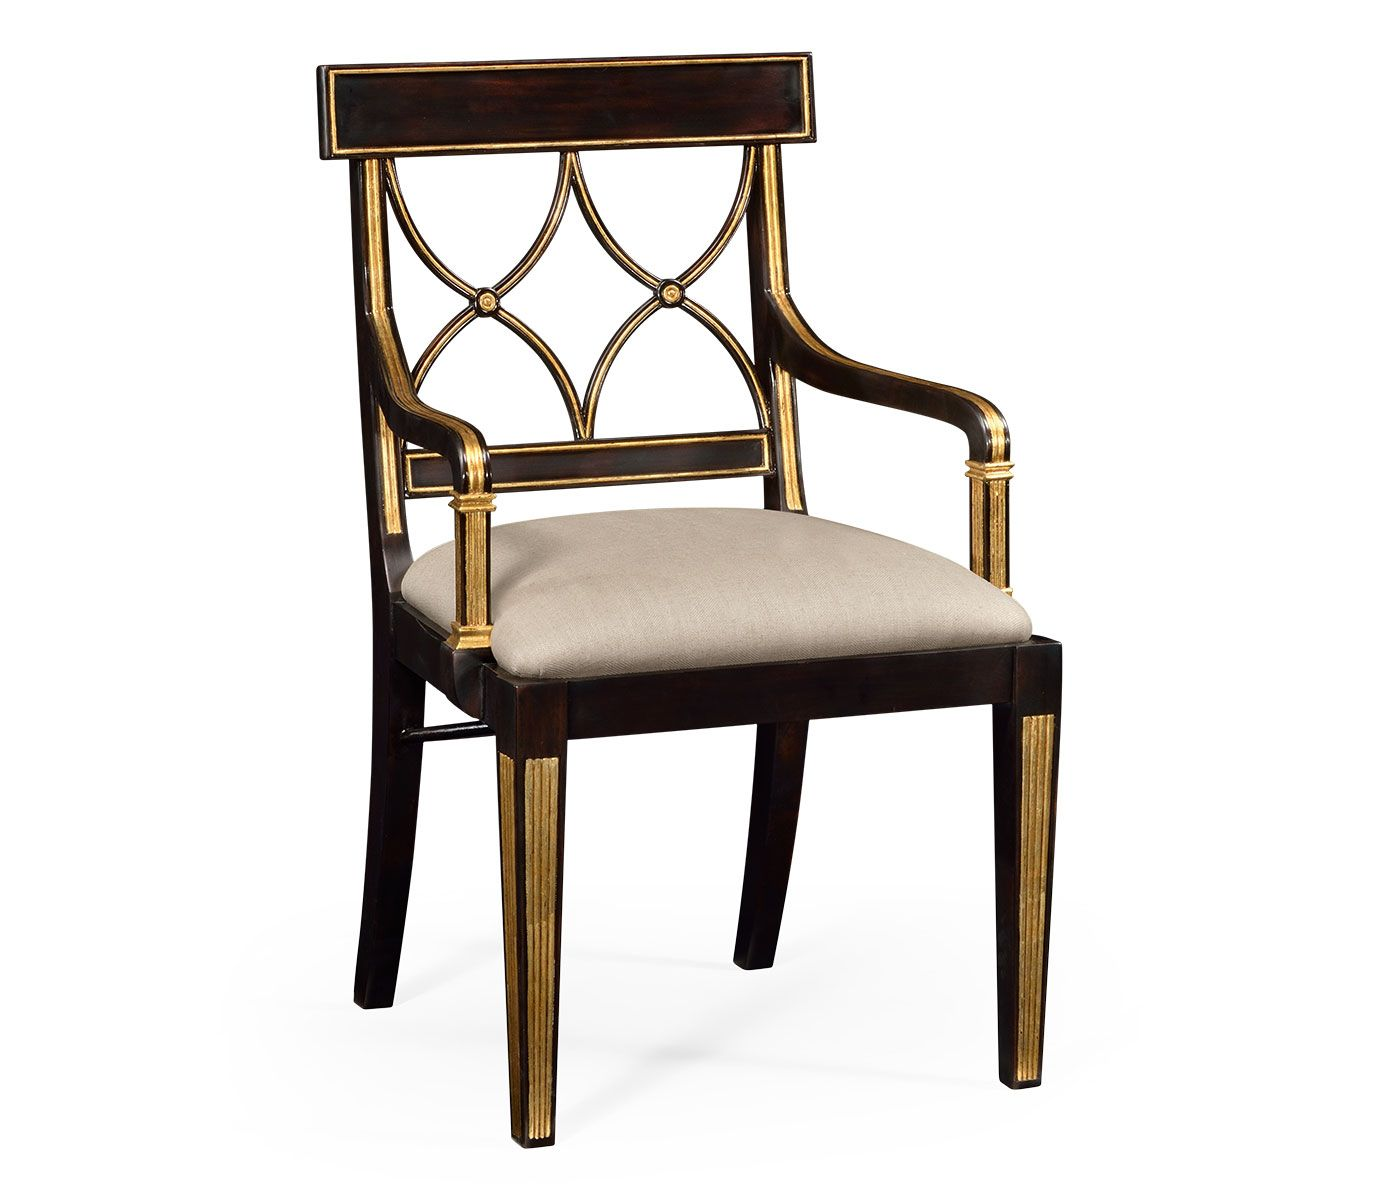 Regency black painted curved back chair (Arm) 6 in stock